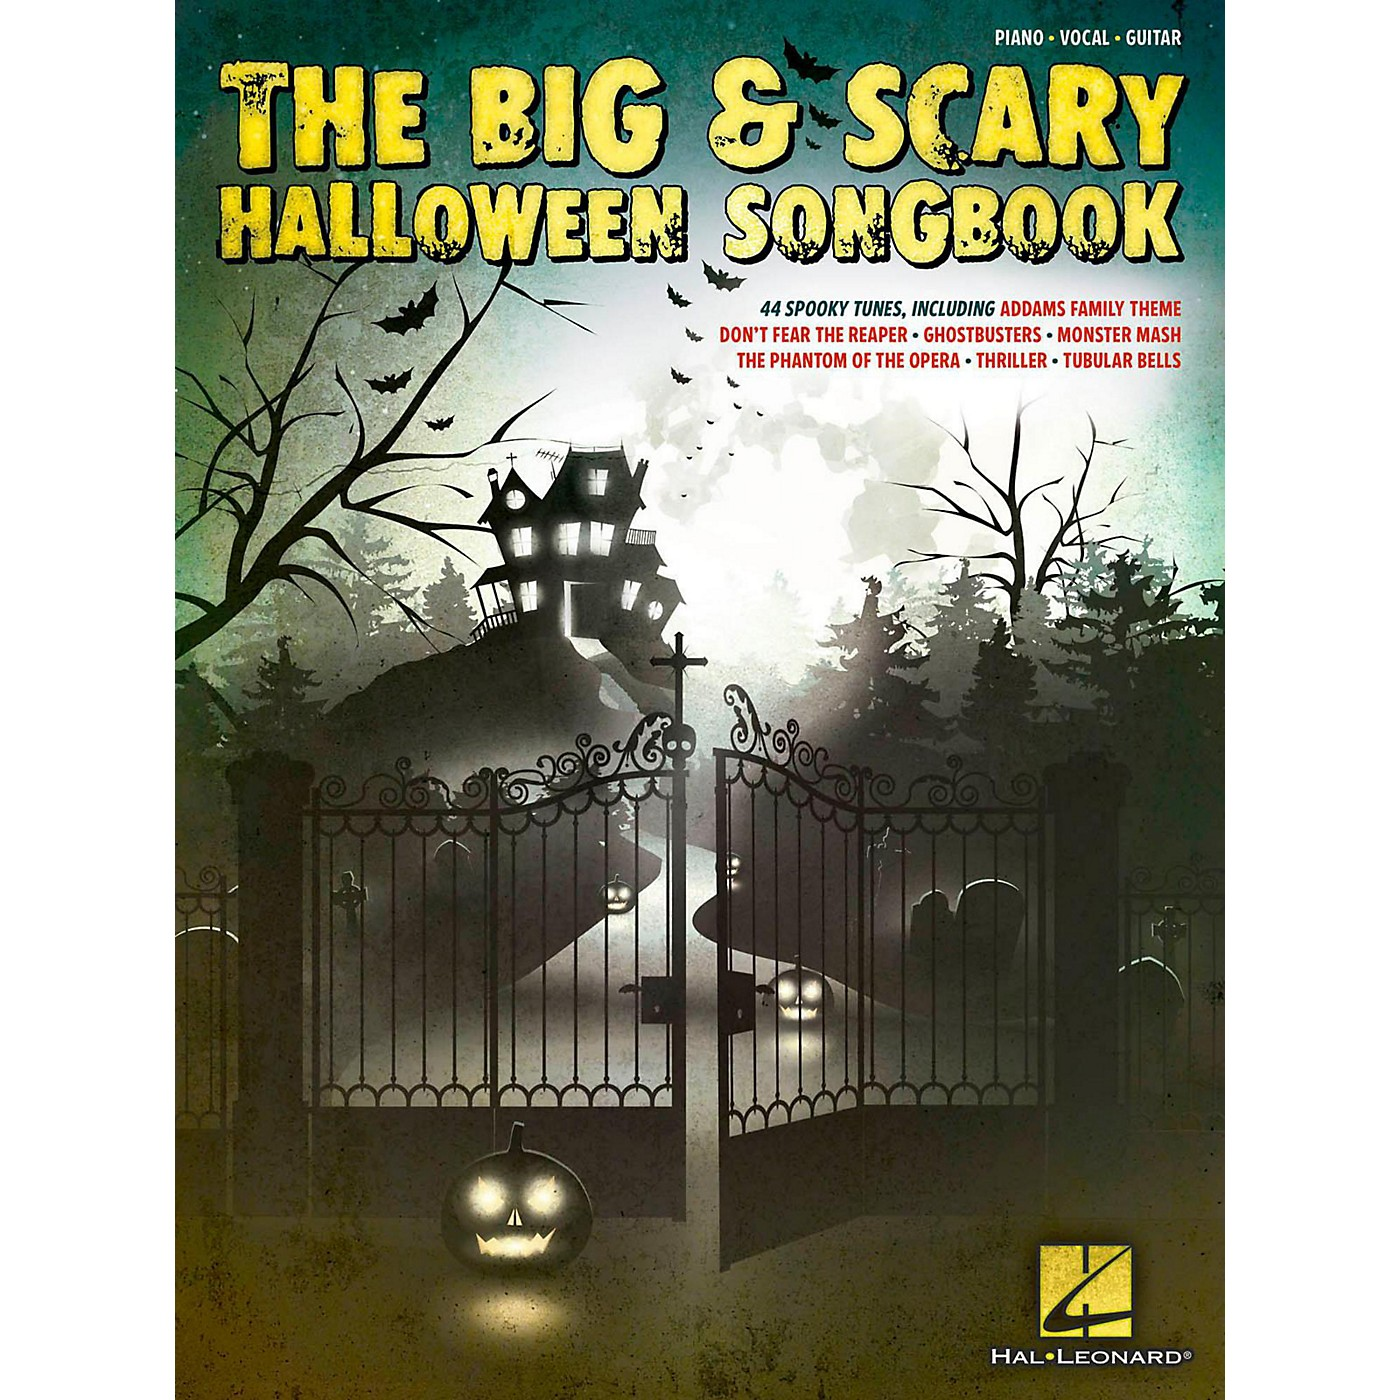 Hal Leonard The Big & Scary Halloween Songbook for Piano/Vocal/Guitar thumbnail